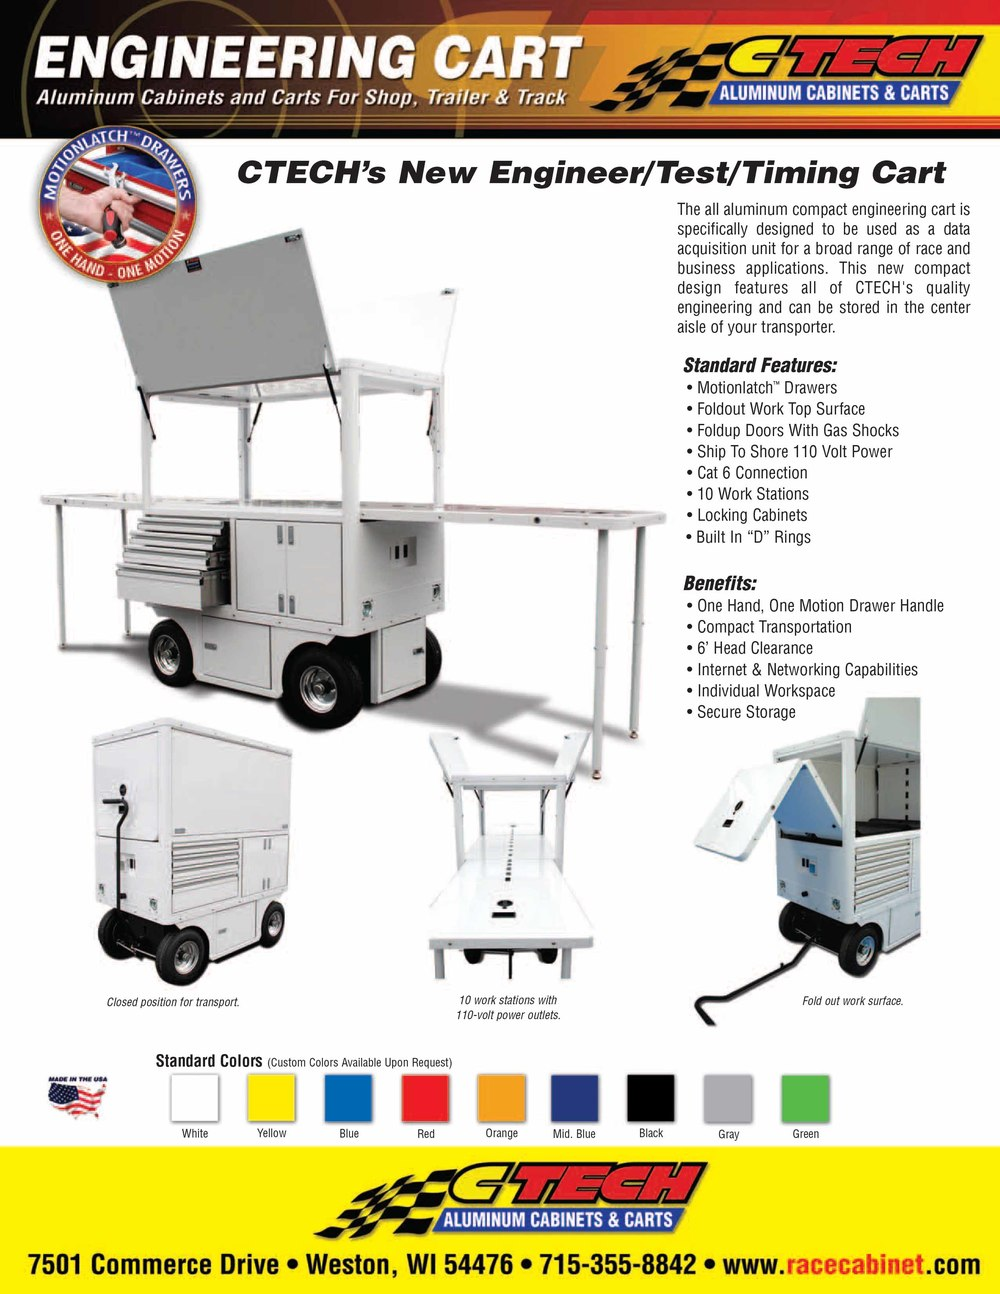 ENGINEERING CART